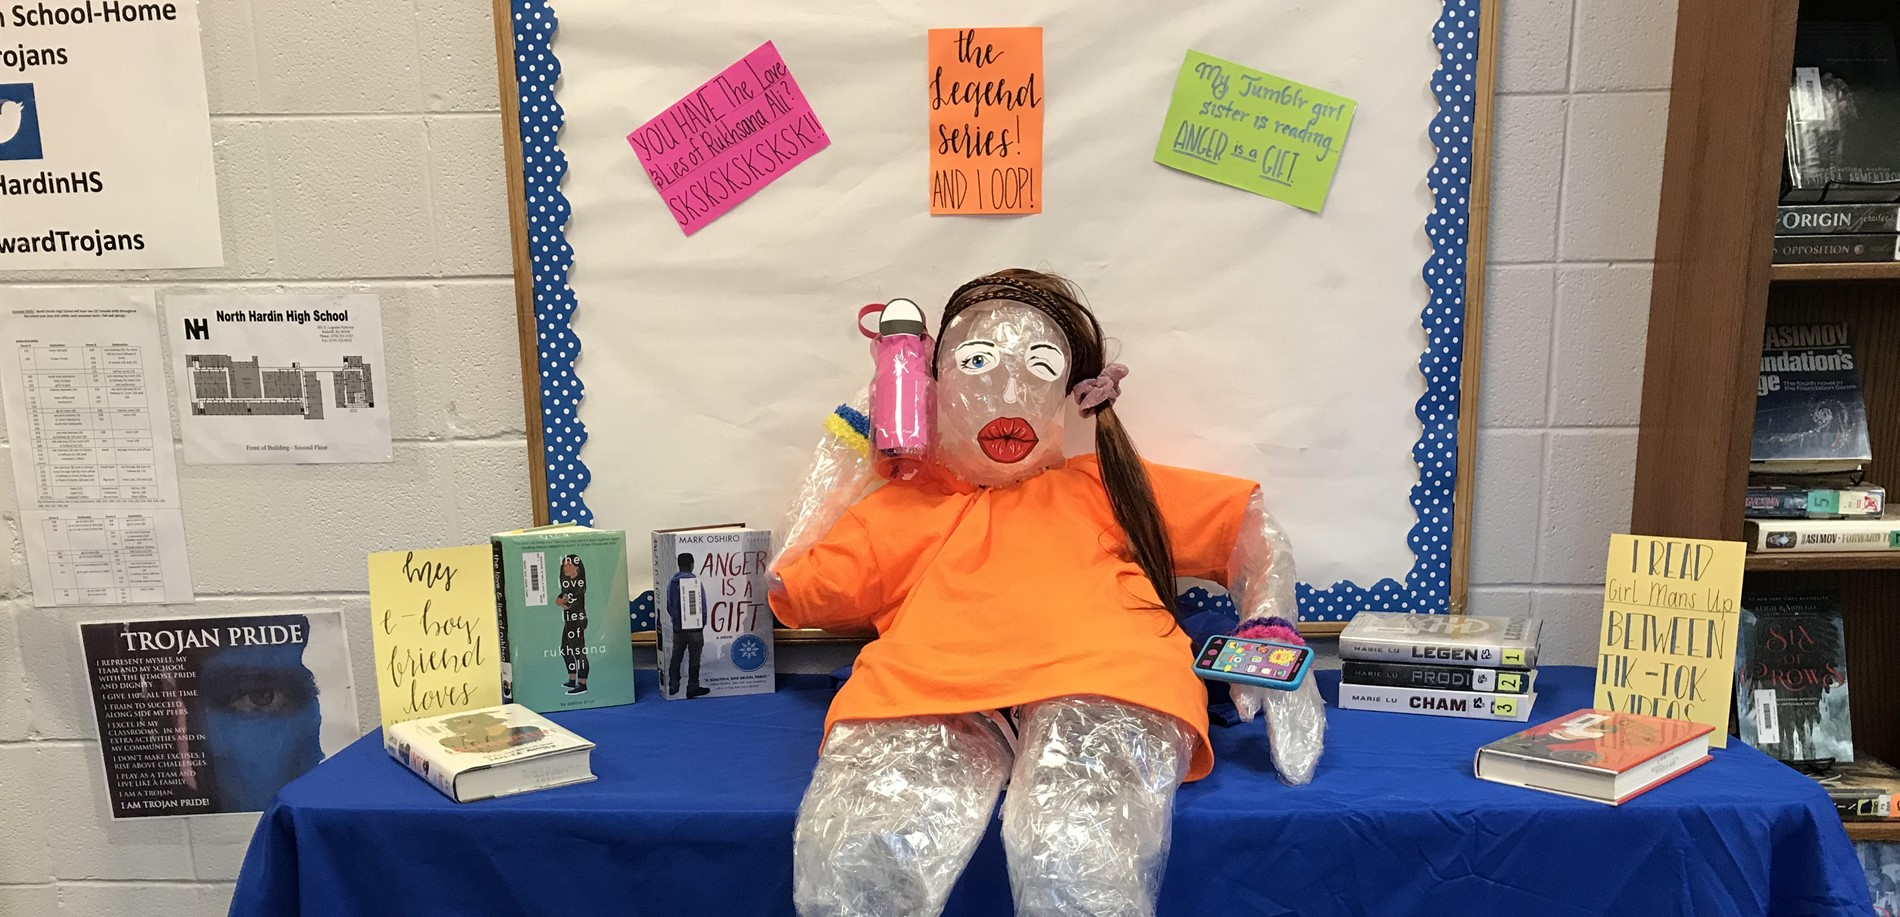 Visco girl promotes books in LMC